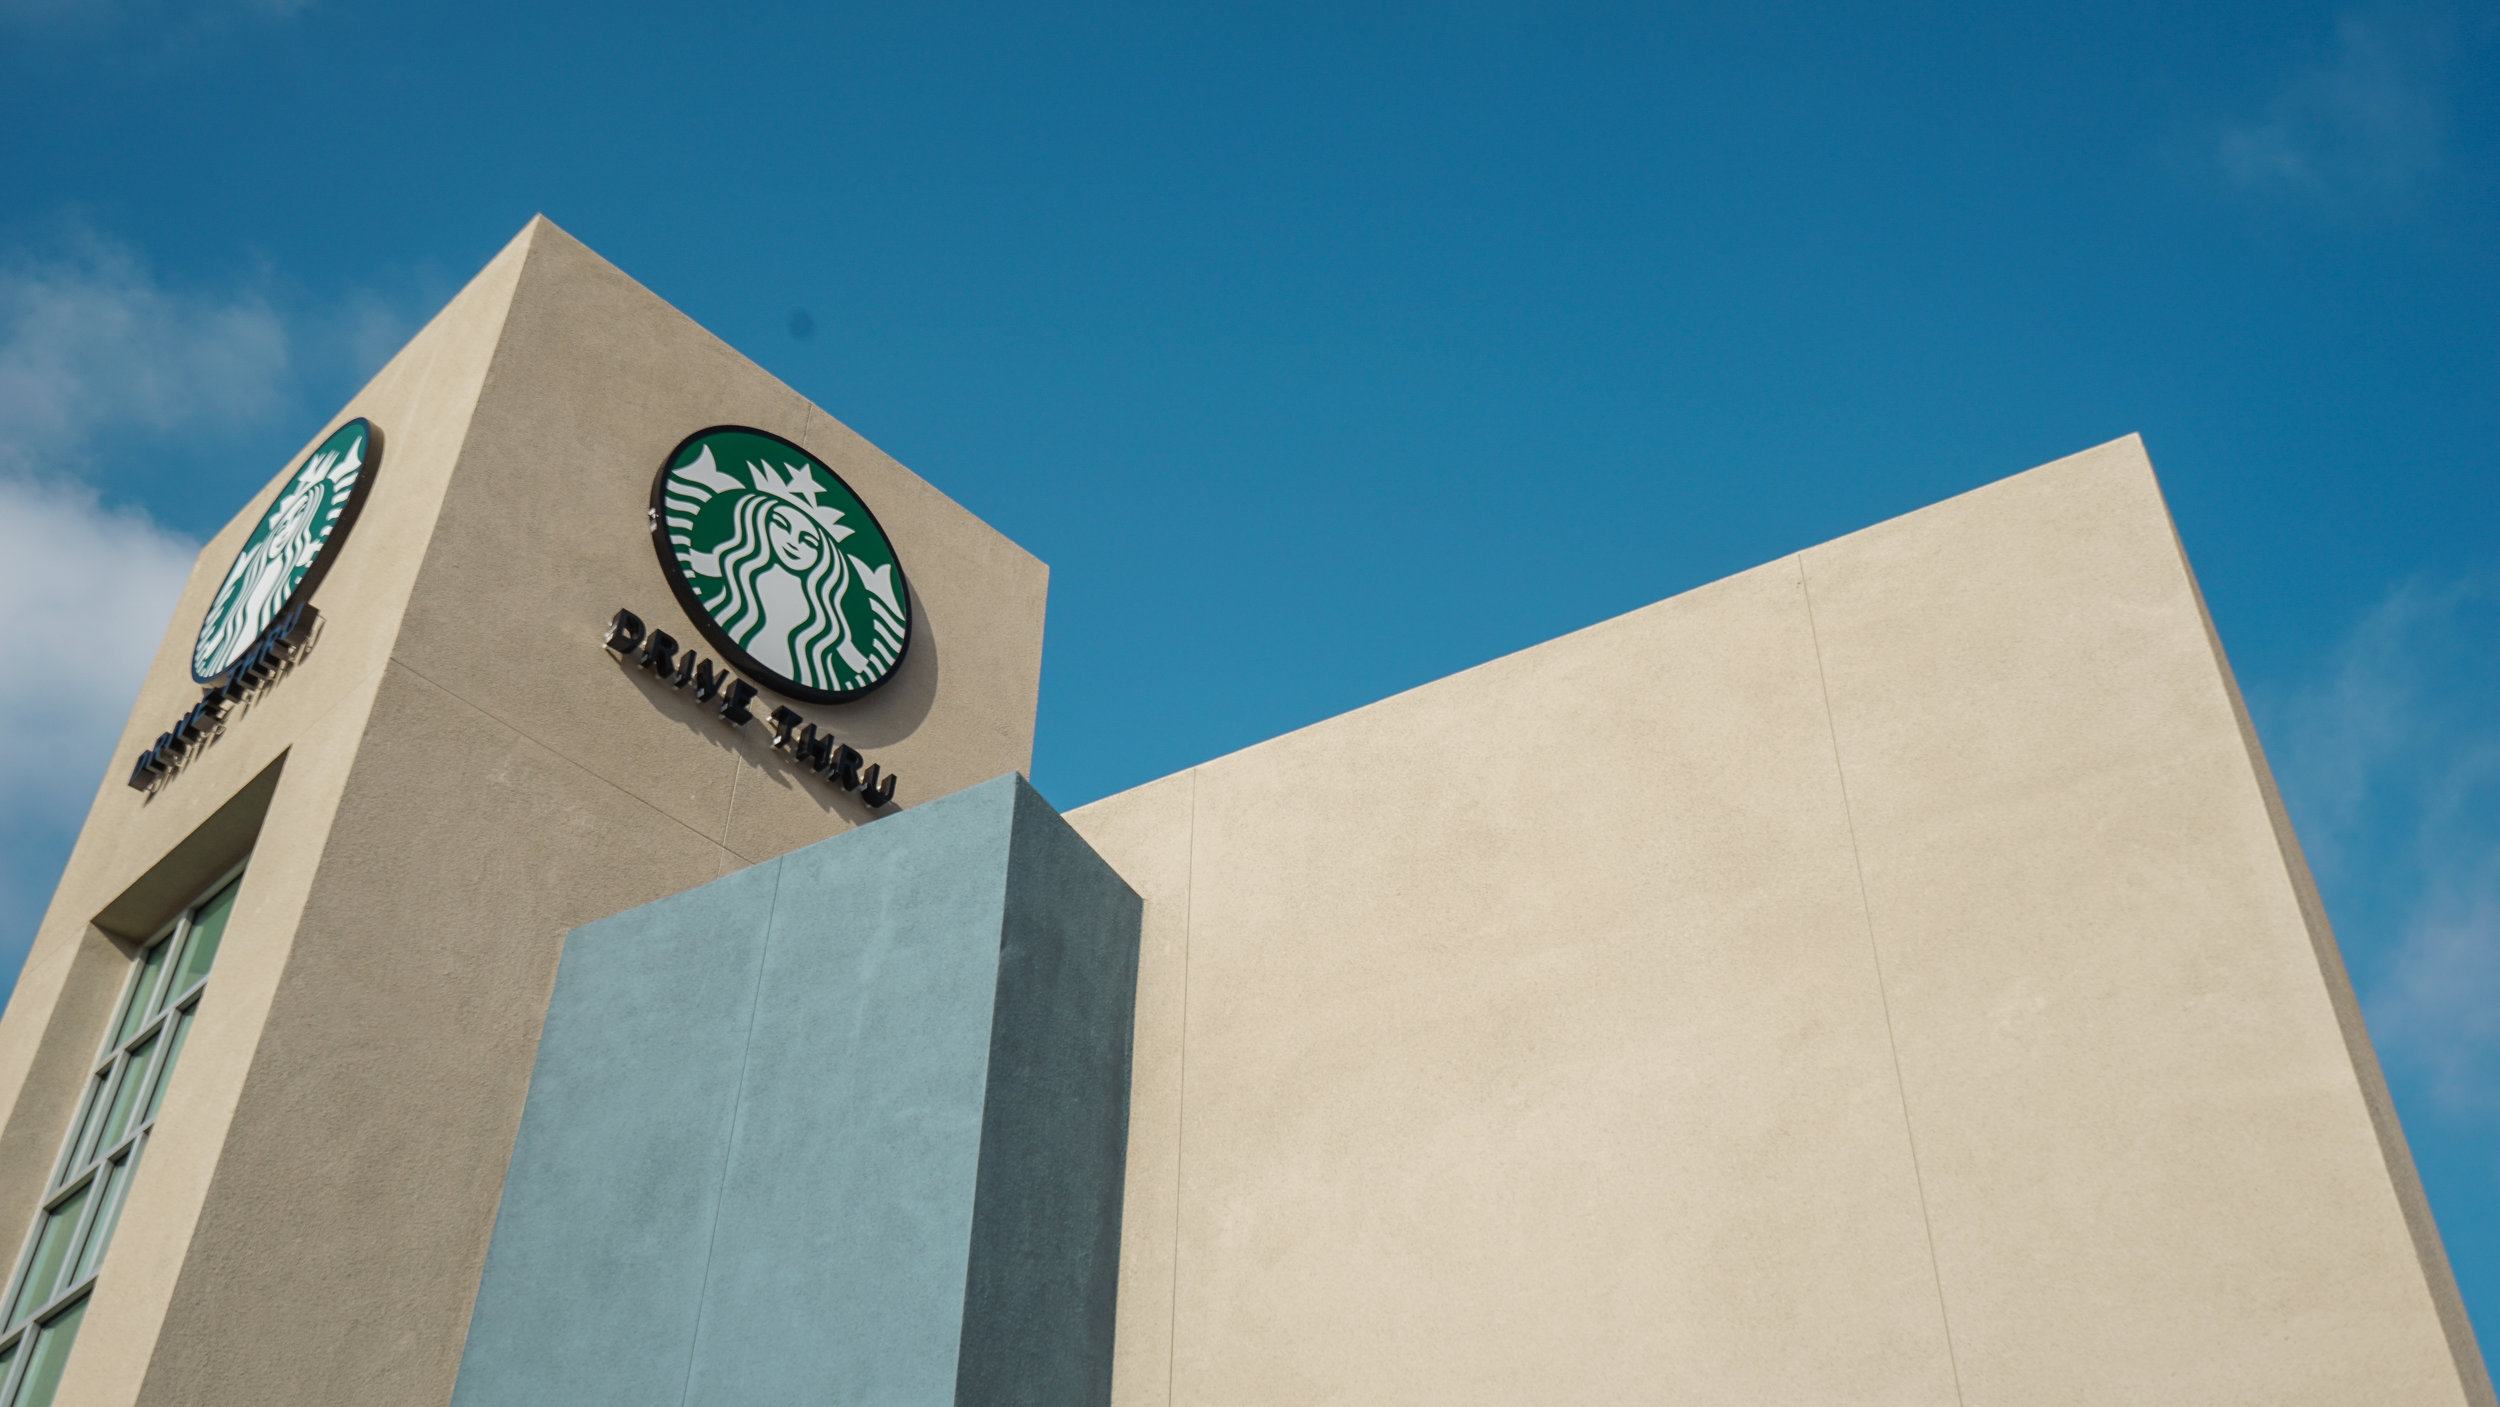 Starbucks - Discovery Place